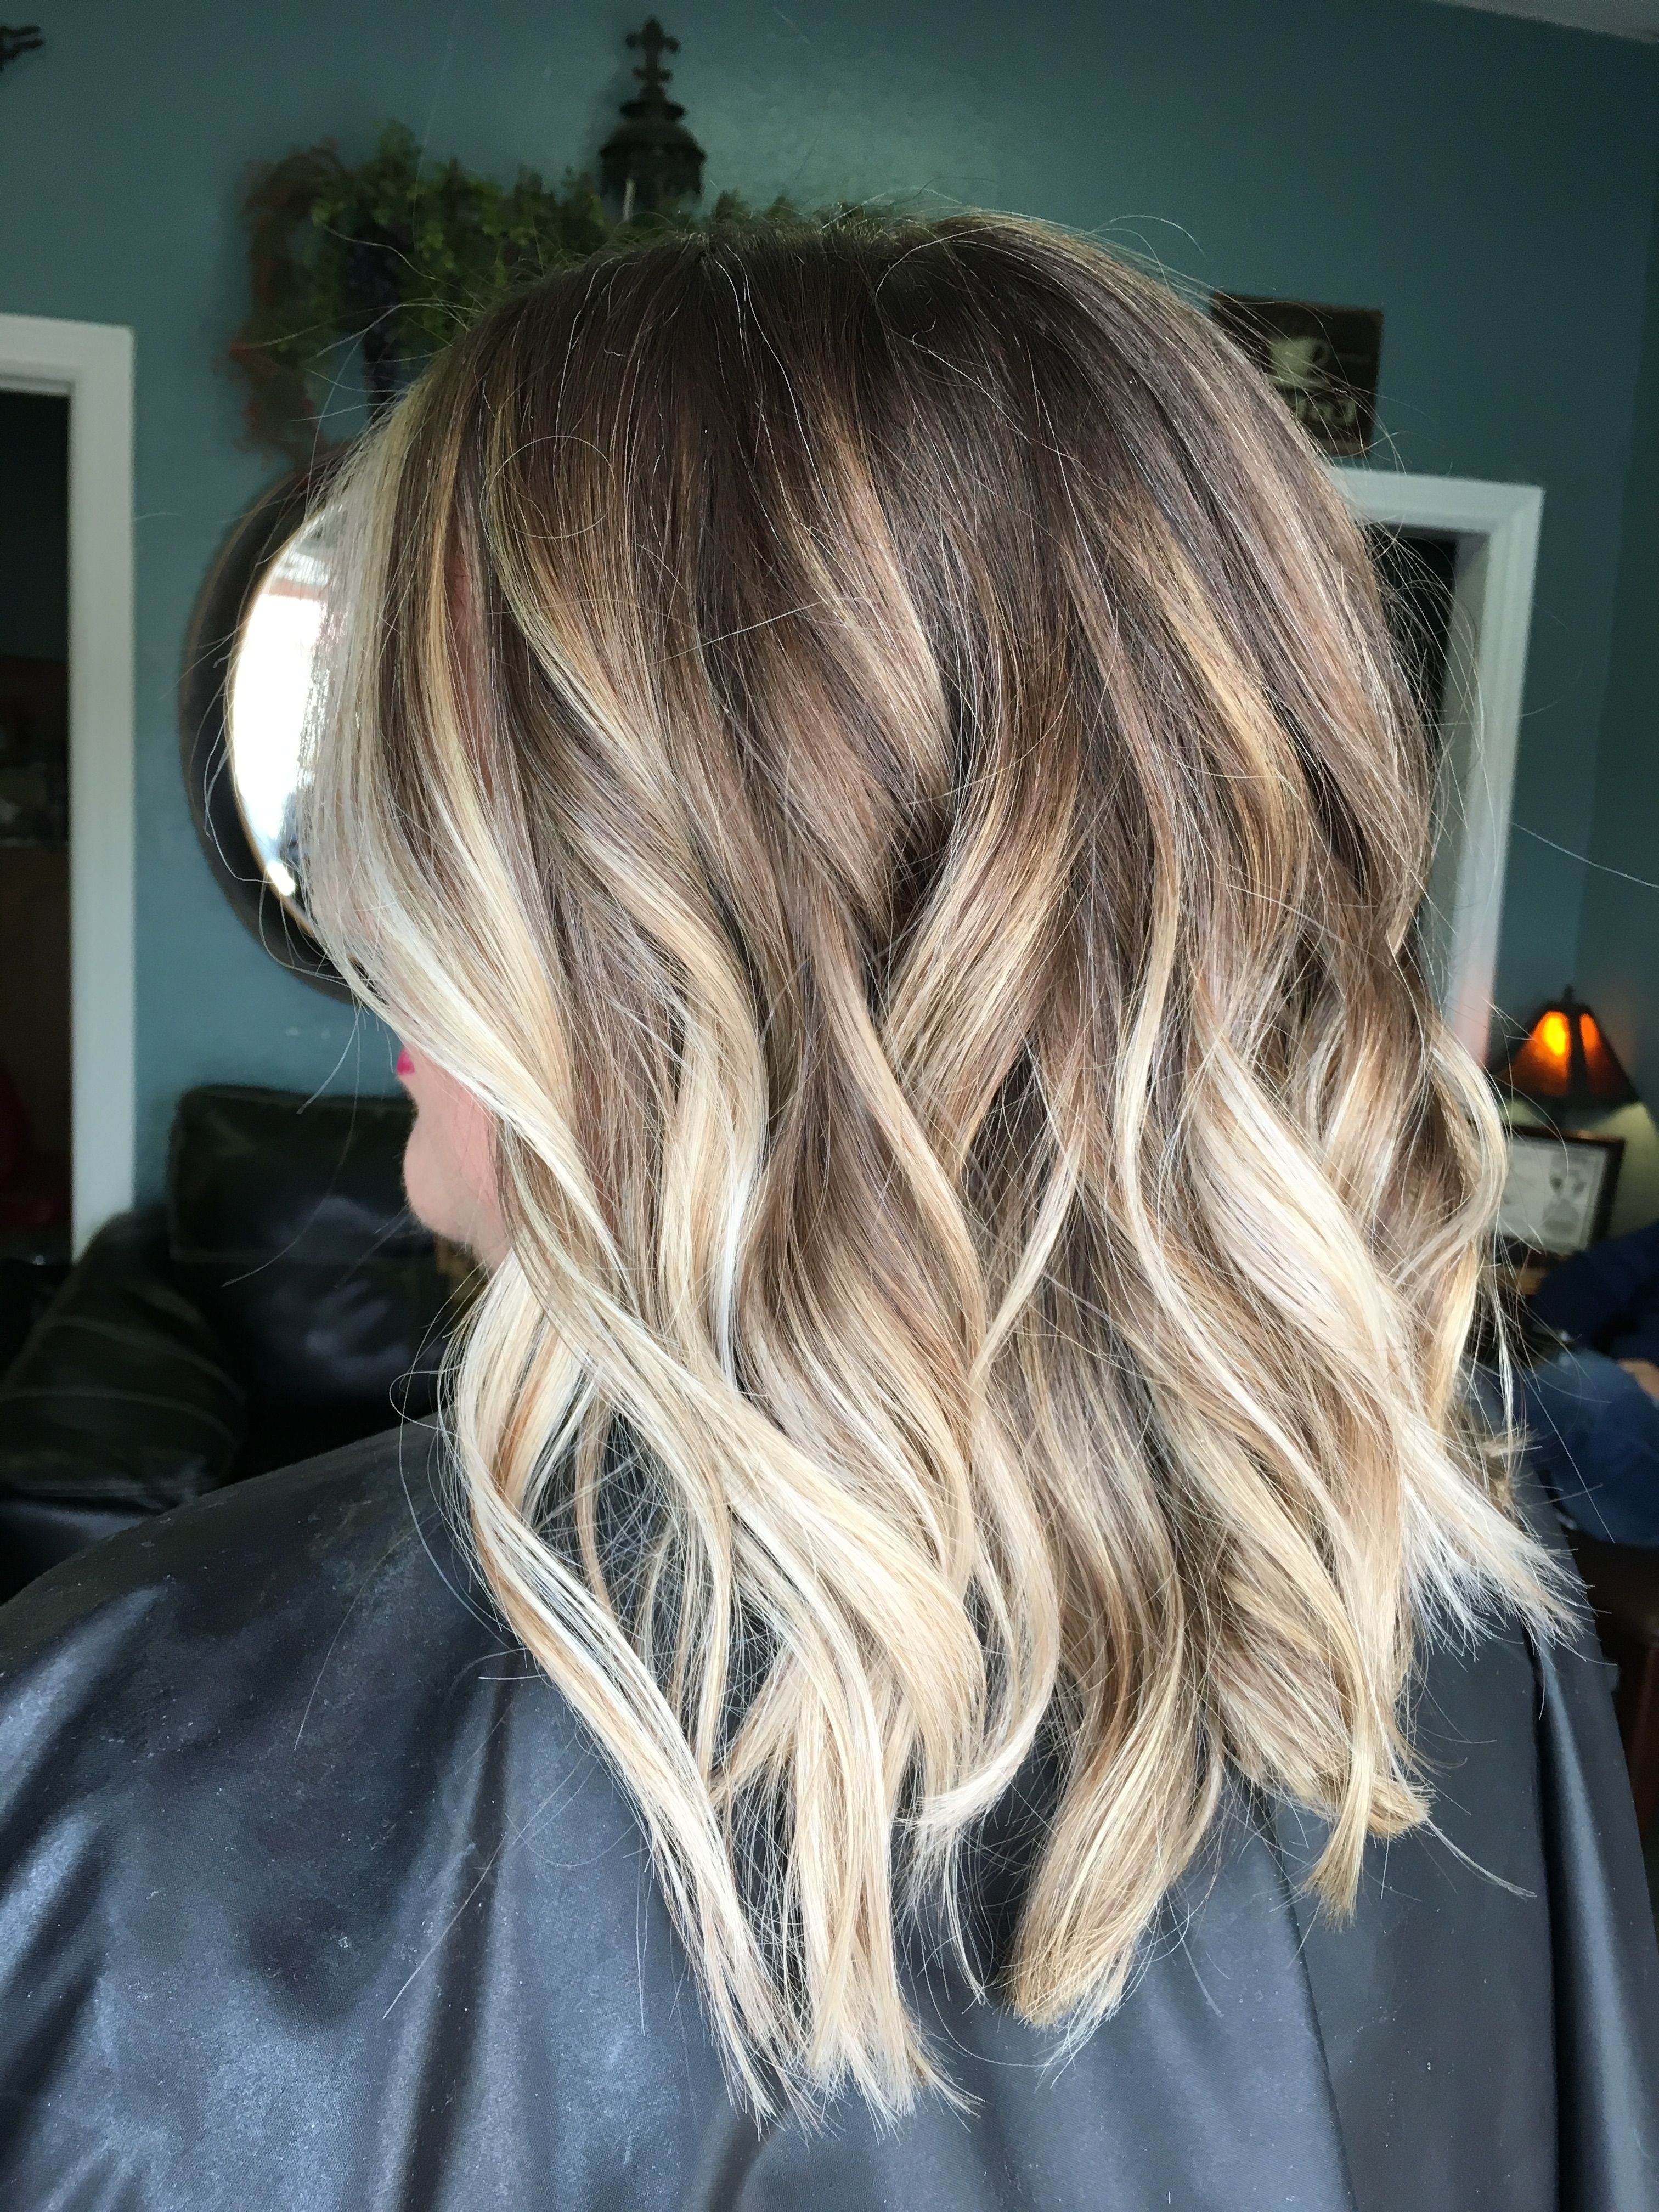 Balayage, Blonde Hair, Brown Hair, Blonde Highlights, Lob, Bob Inside Most Up To Date Soft Waves Blonde Hairstyles With Platinum Tips (View 3 of 20)